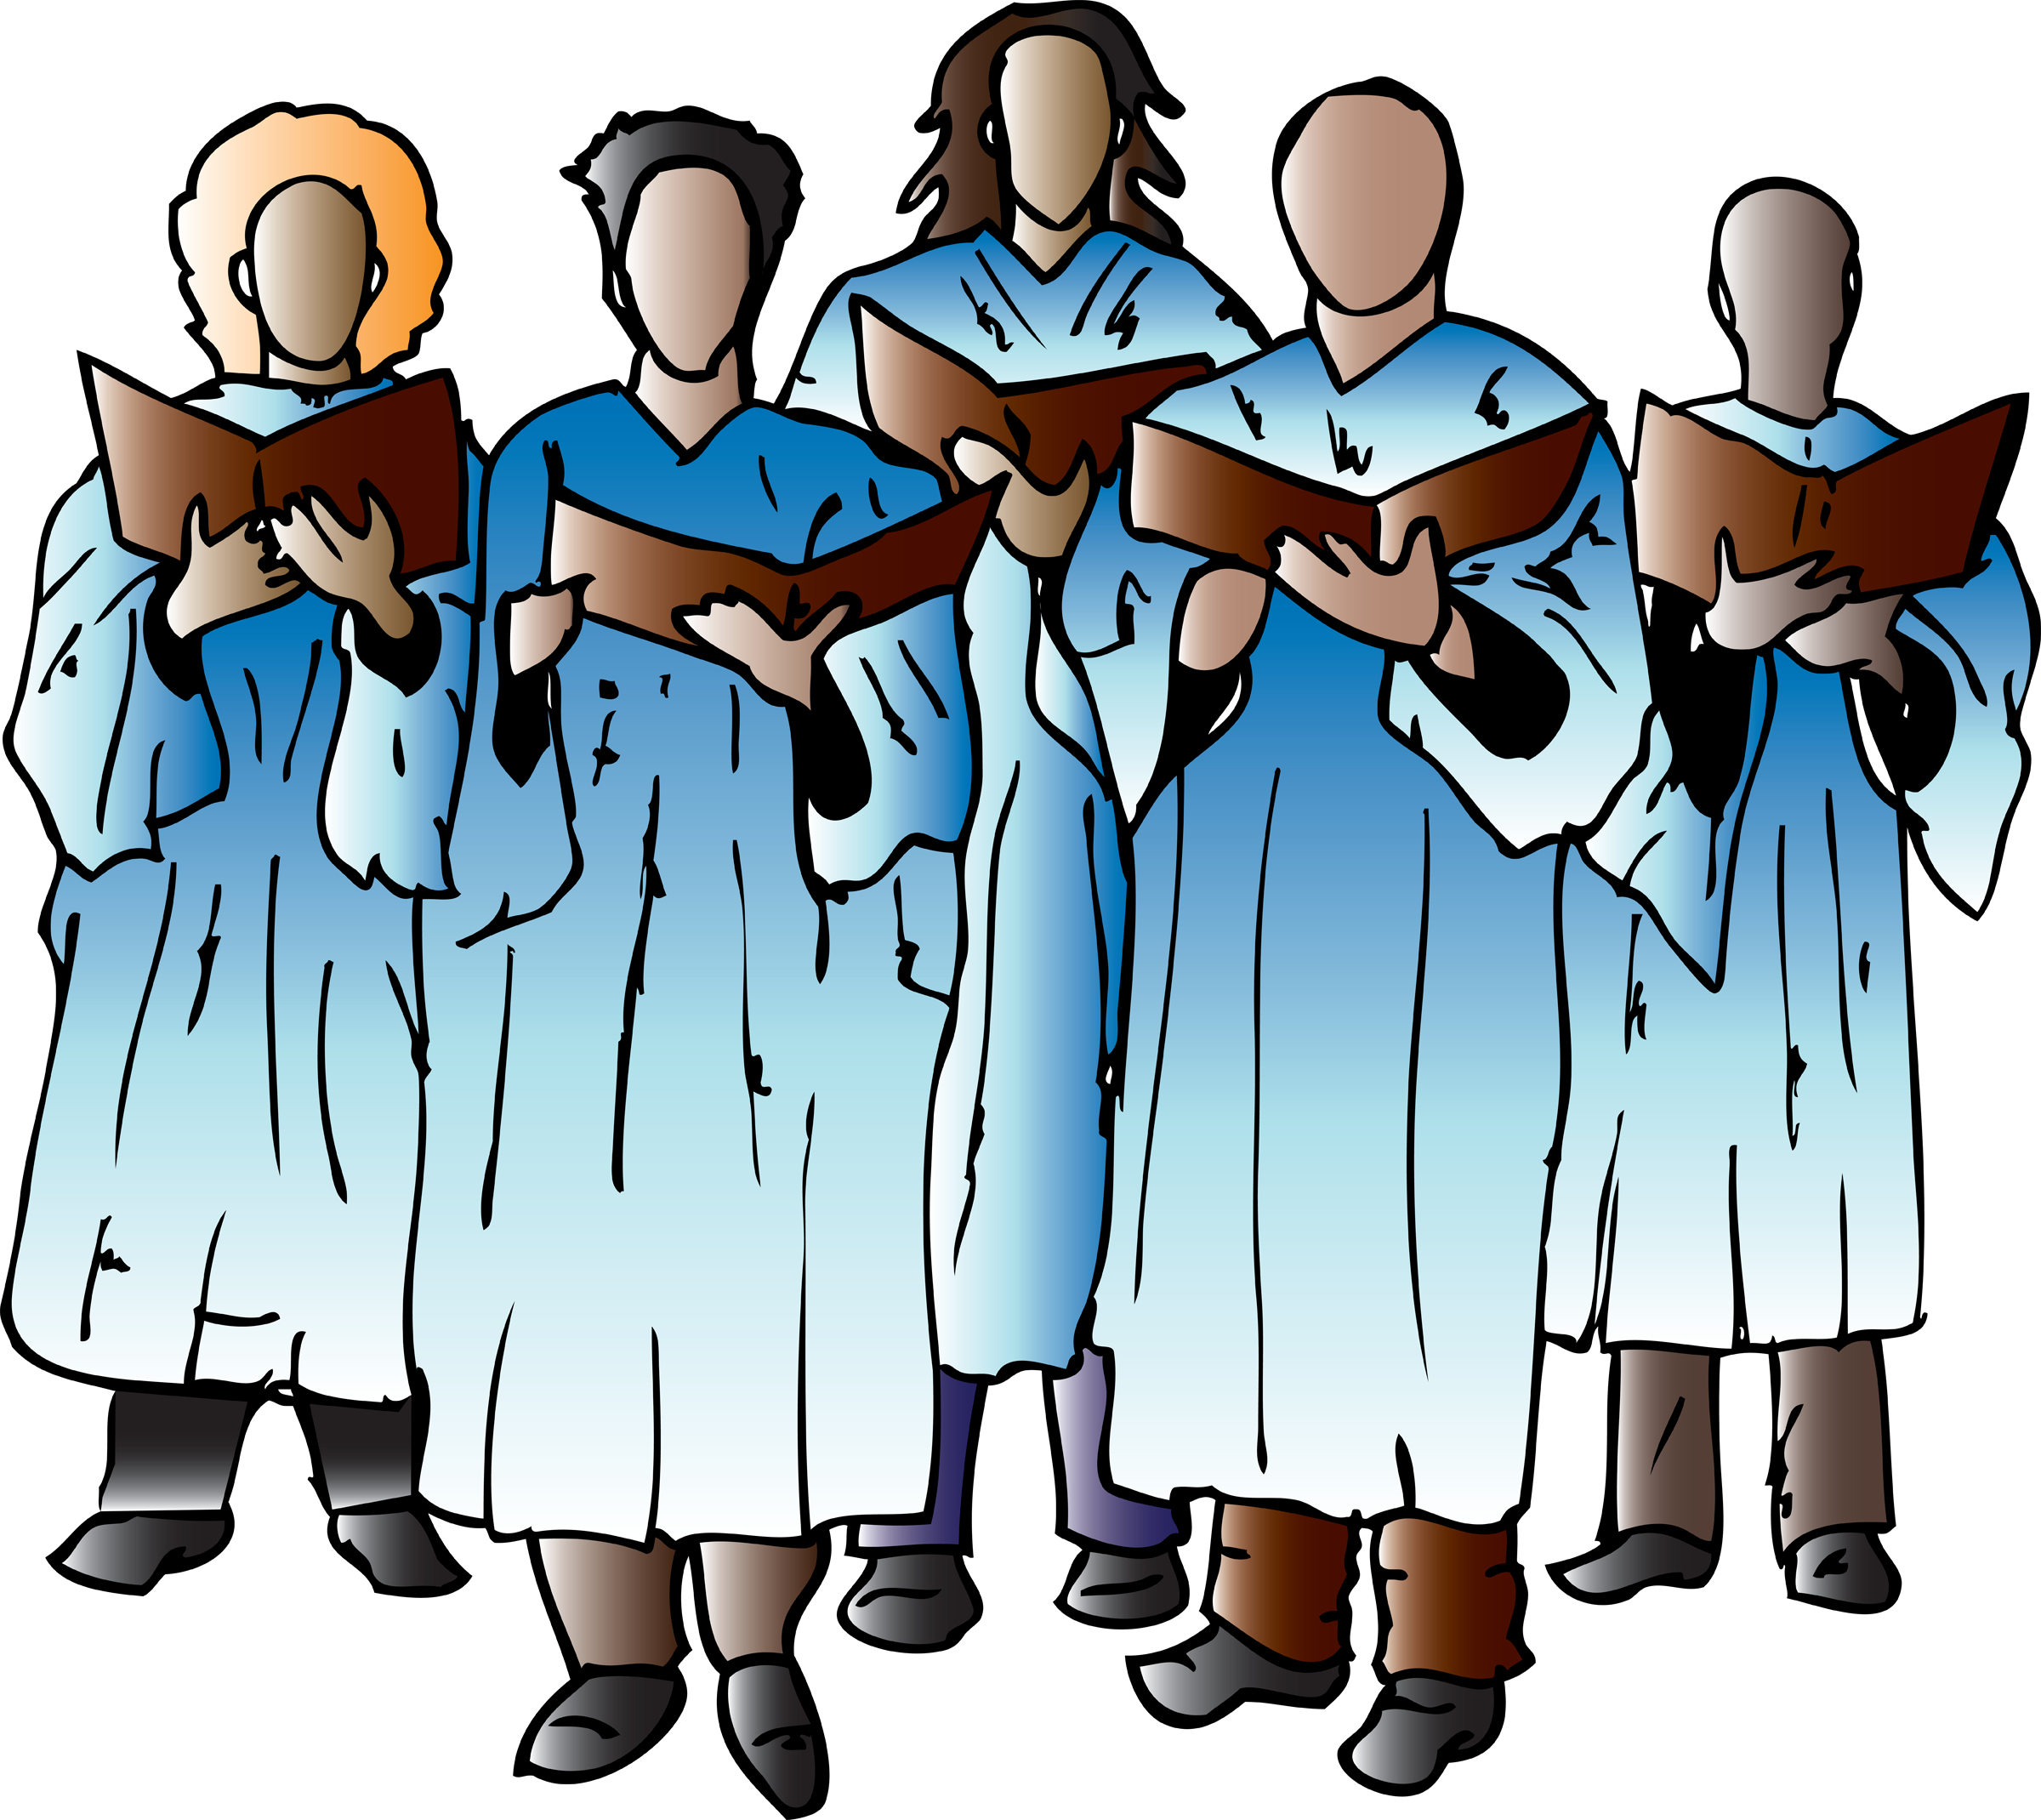 clipart freeuse library Sign flag church free. Youth clipart speech choir